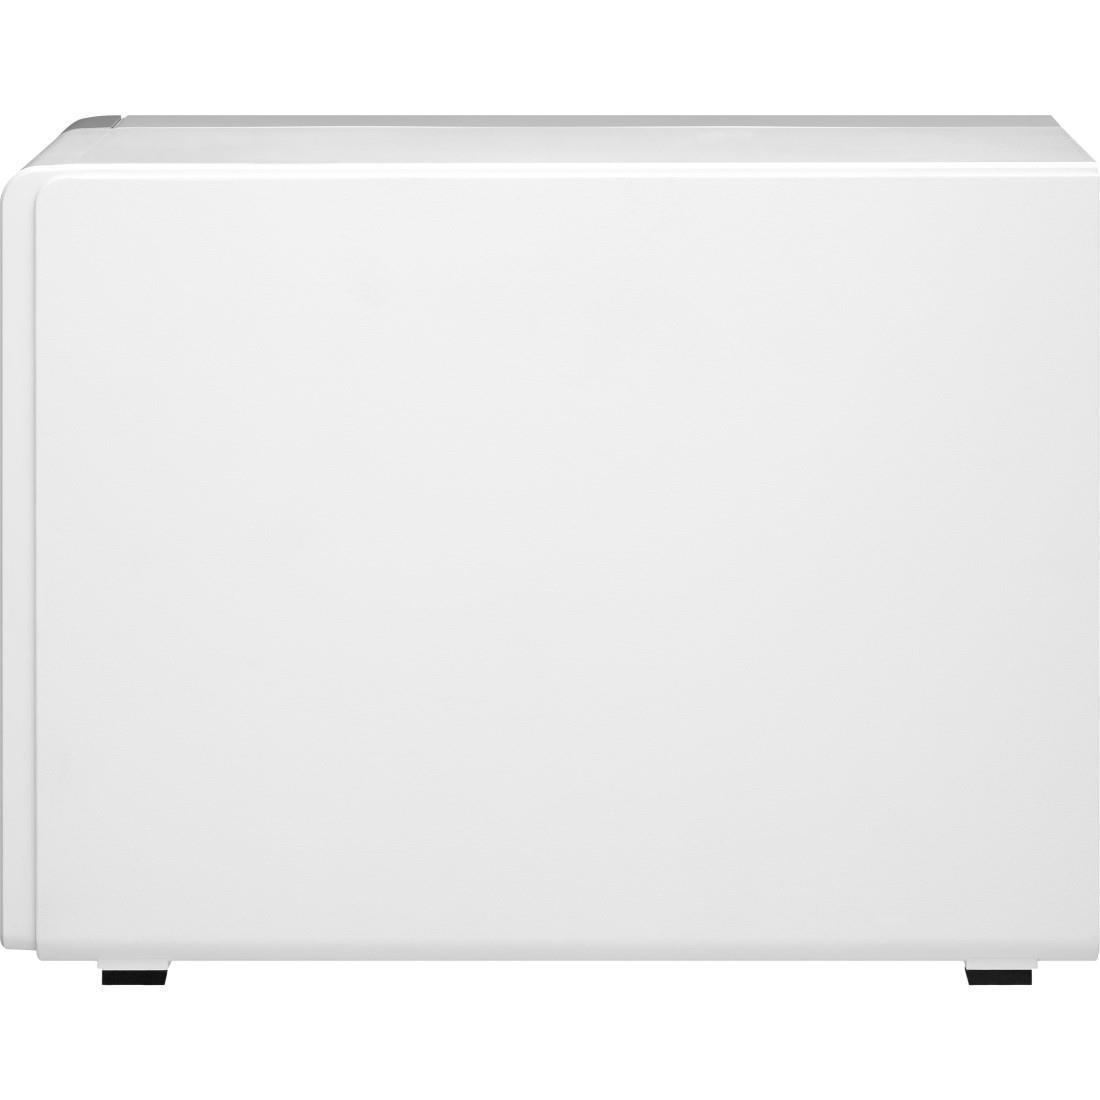 QNAP TS-231P 4TB 2-Bay NAS with 2 x 2TB Seagate IronWolf Drives